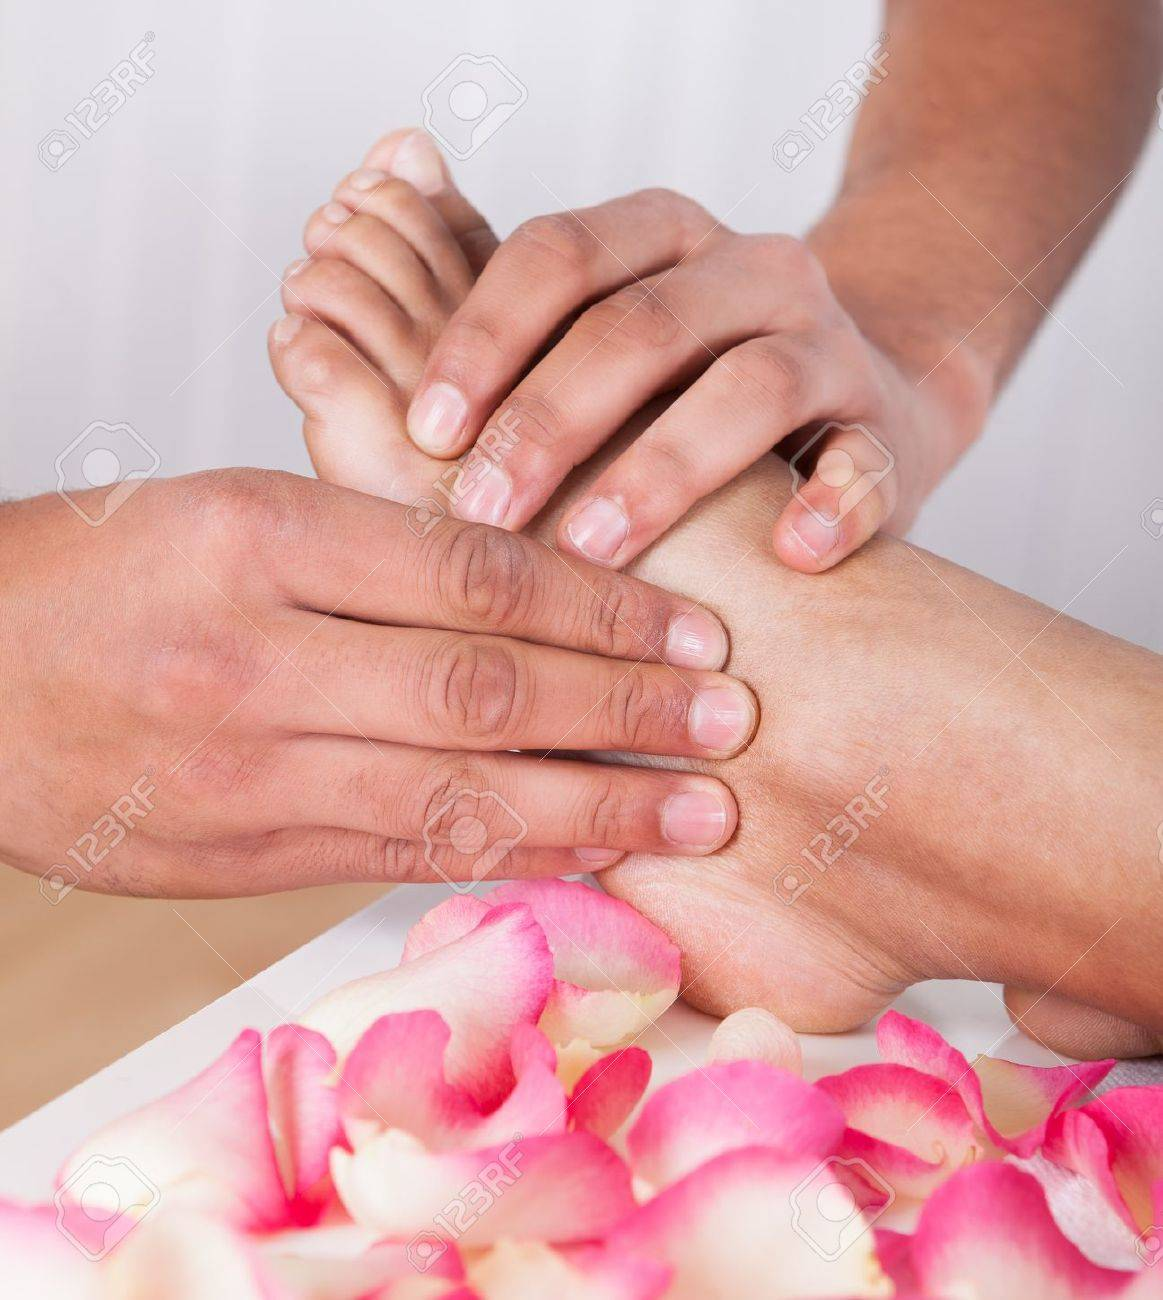 Close-up Of Hand Massaging Foot In Spa Stock Photo - 19382967